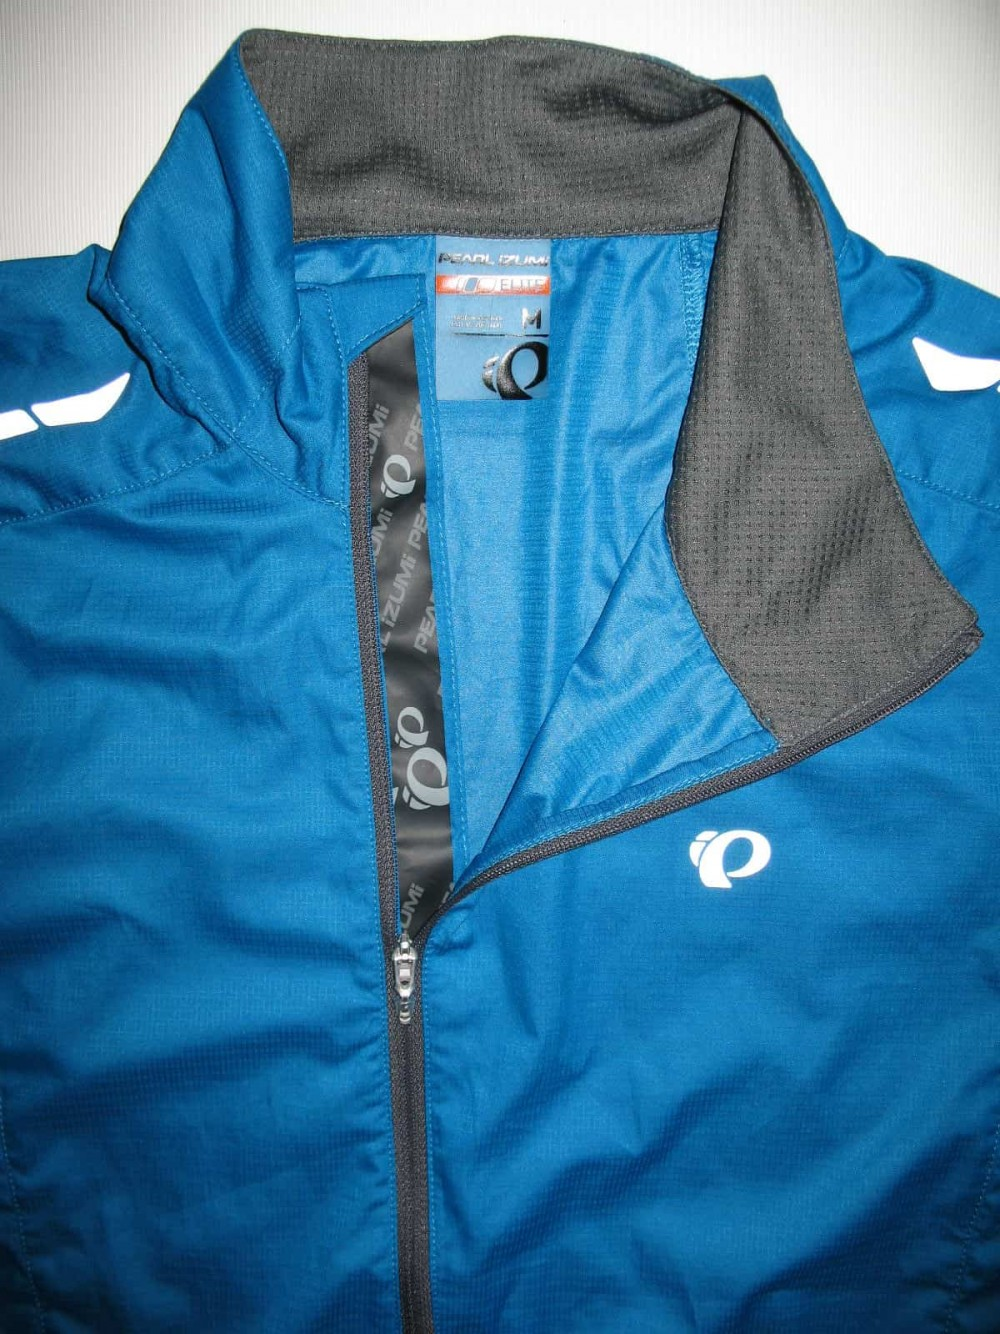 Велокуртка PEARL IZUMI elite barrier ultralight jacket (размер M) - 2